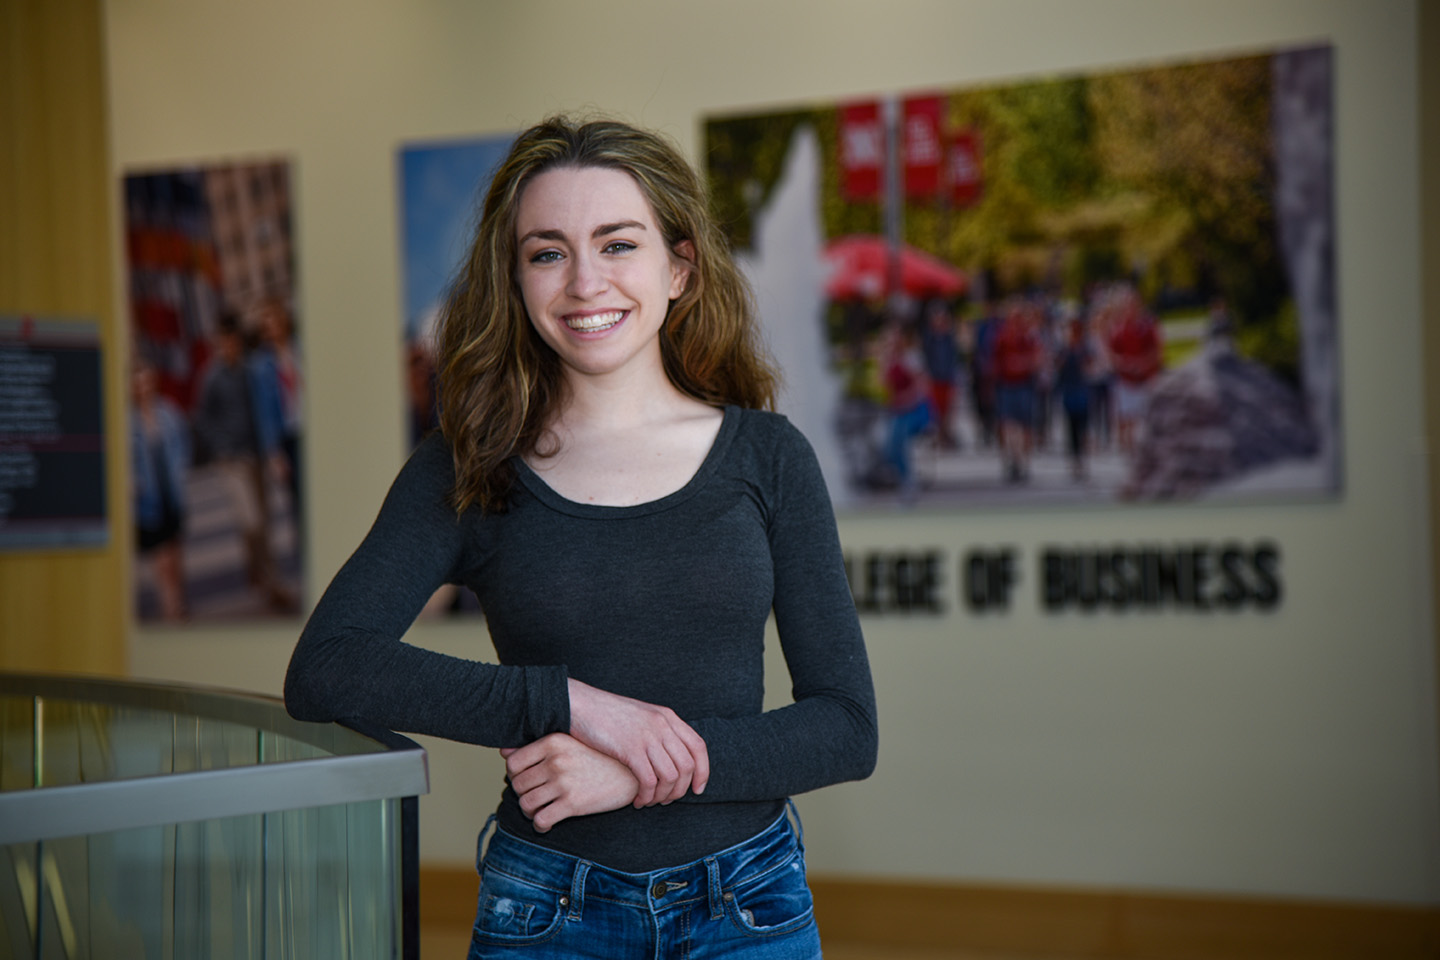 Students Support Well-Being Through Coaching